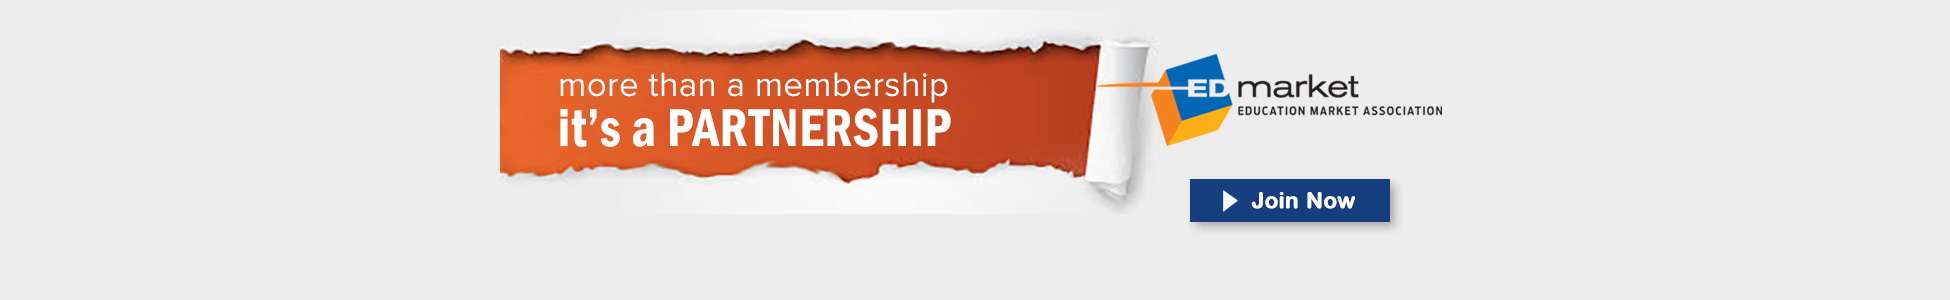 Become an EDmarket member - Renew Your Membership